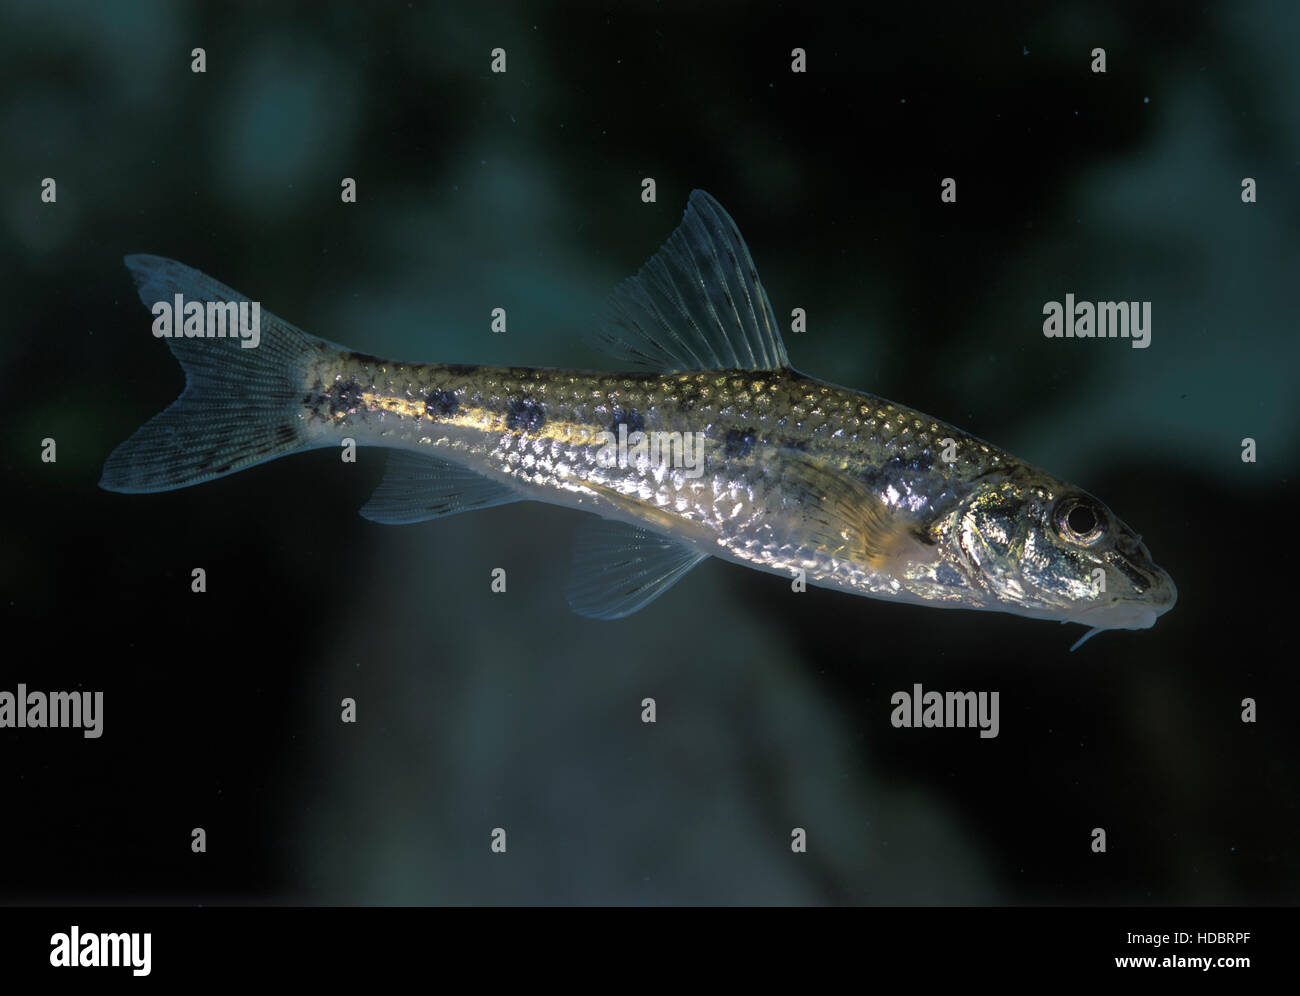 Iberian gudgeon, Gobio lozanoi. Young animal. Portugal. - Stock Image